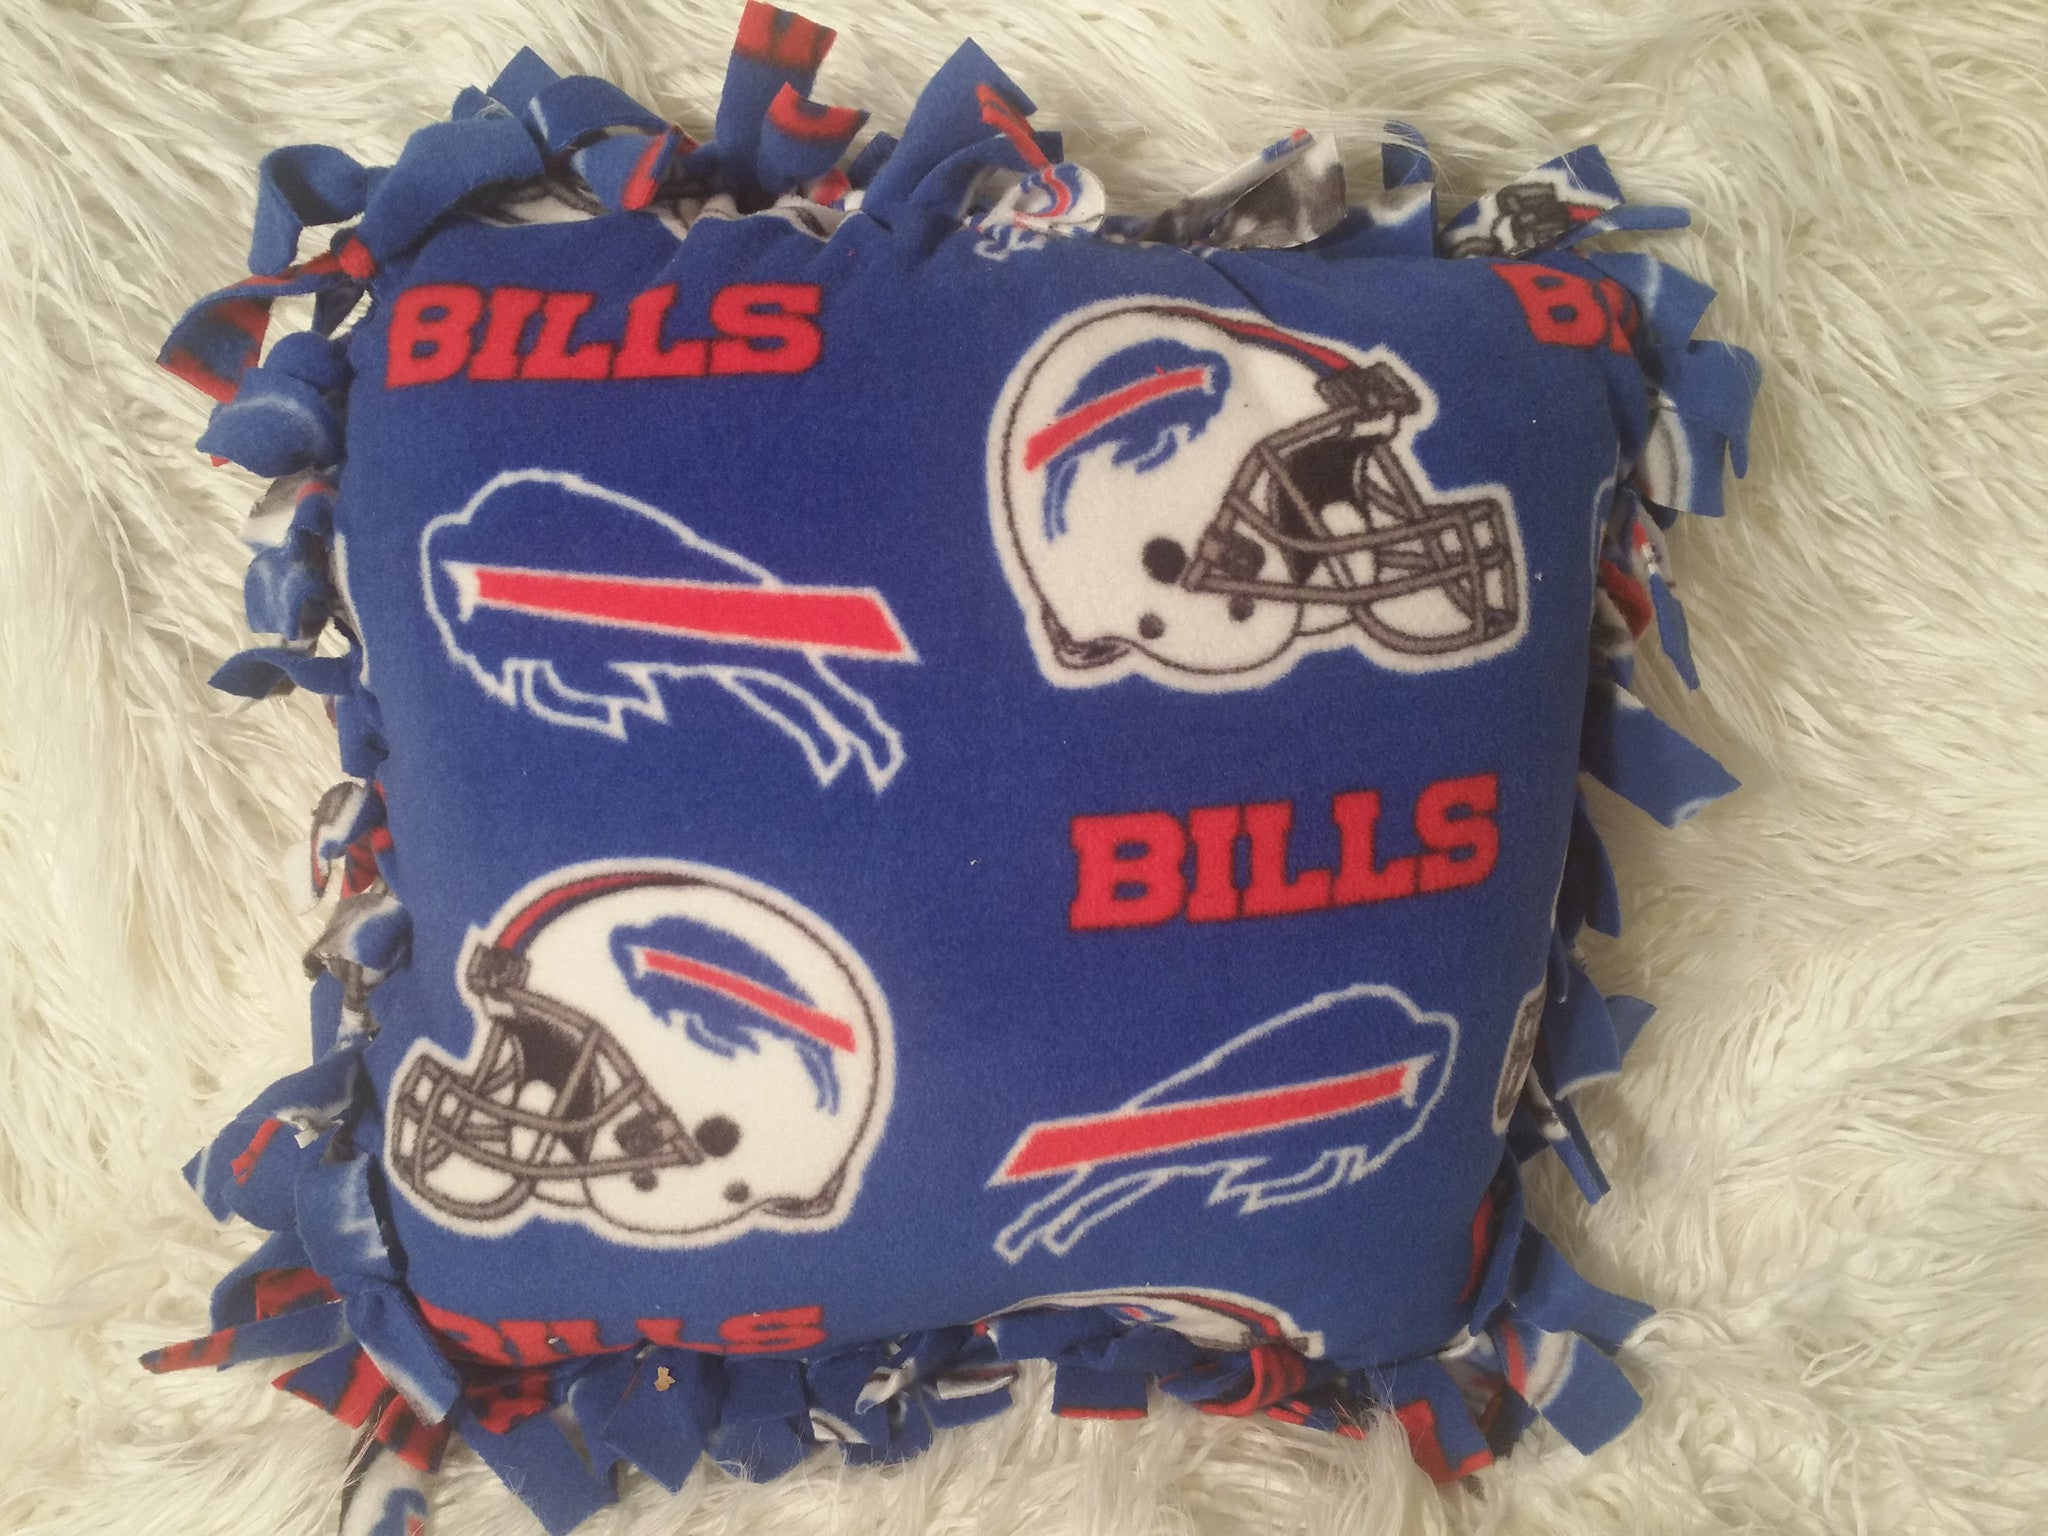 Handmade NFL Fleece Pillows with Fringe - IBL Fashion - 18